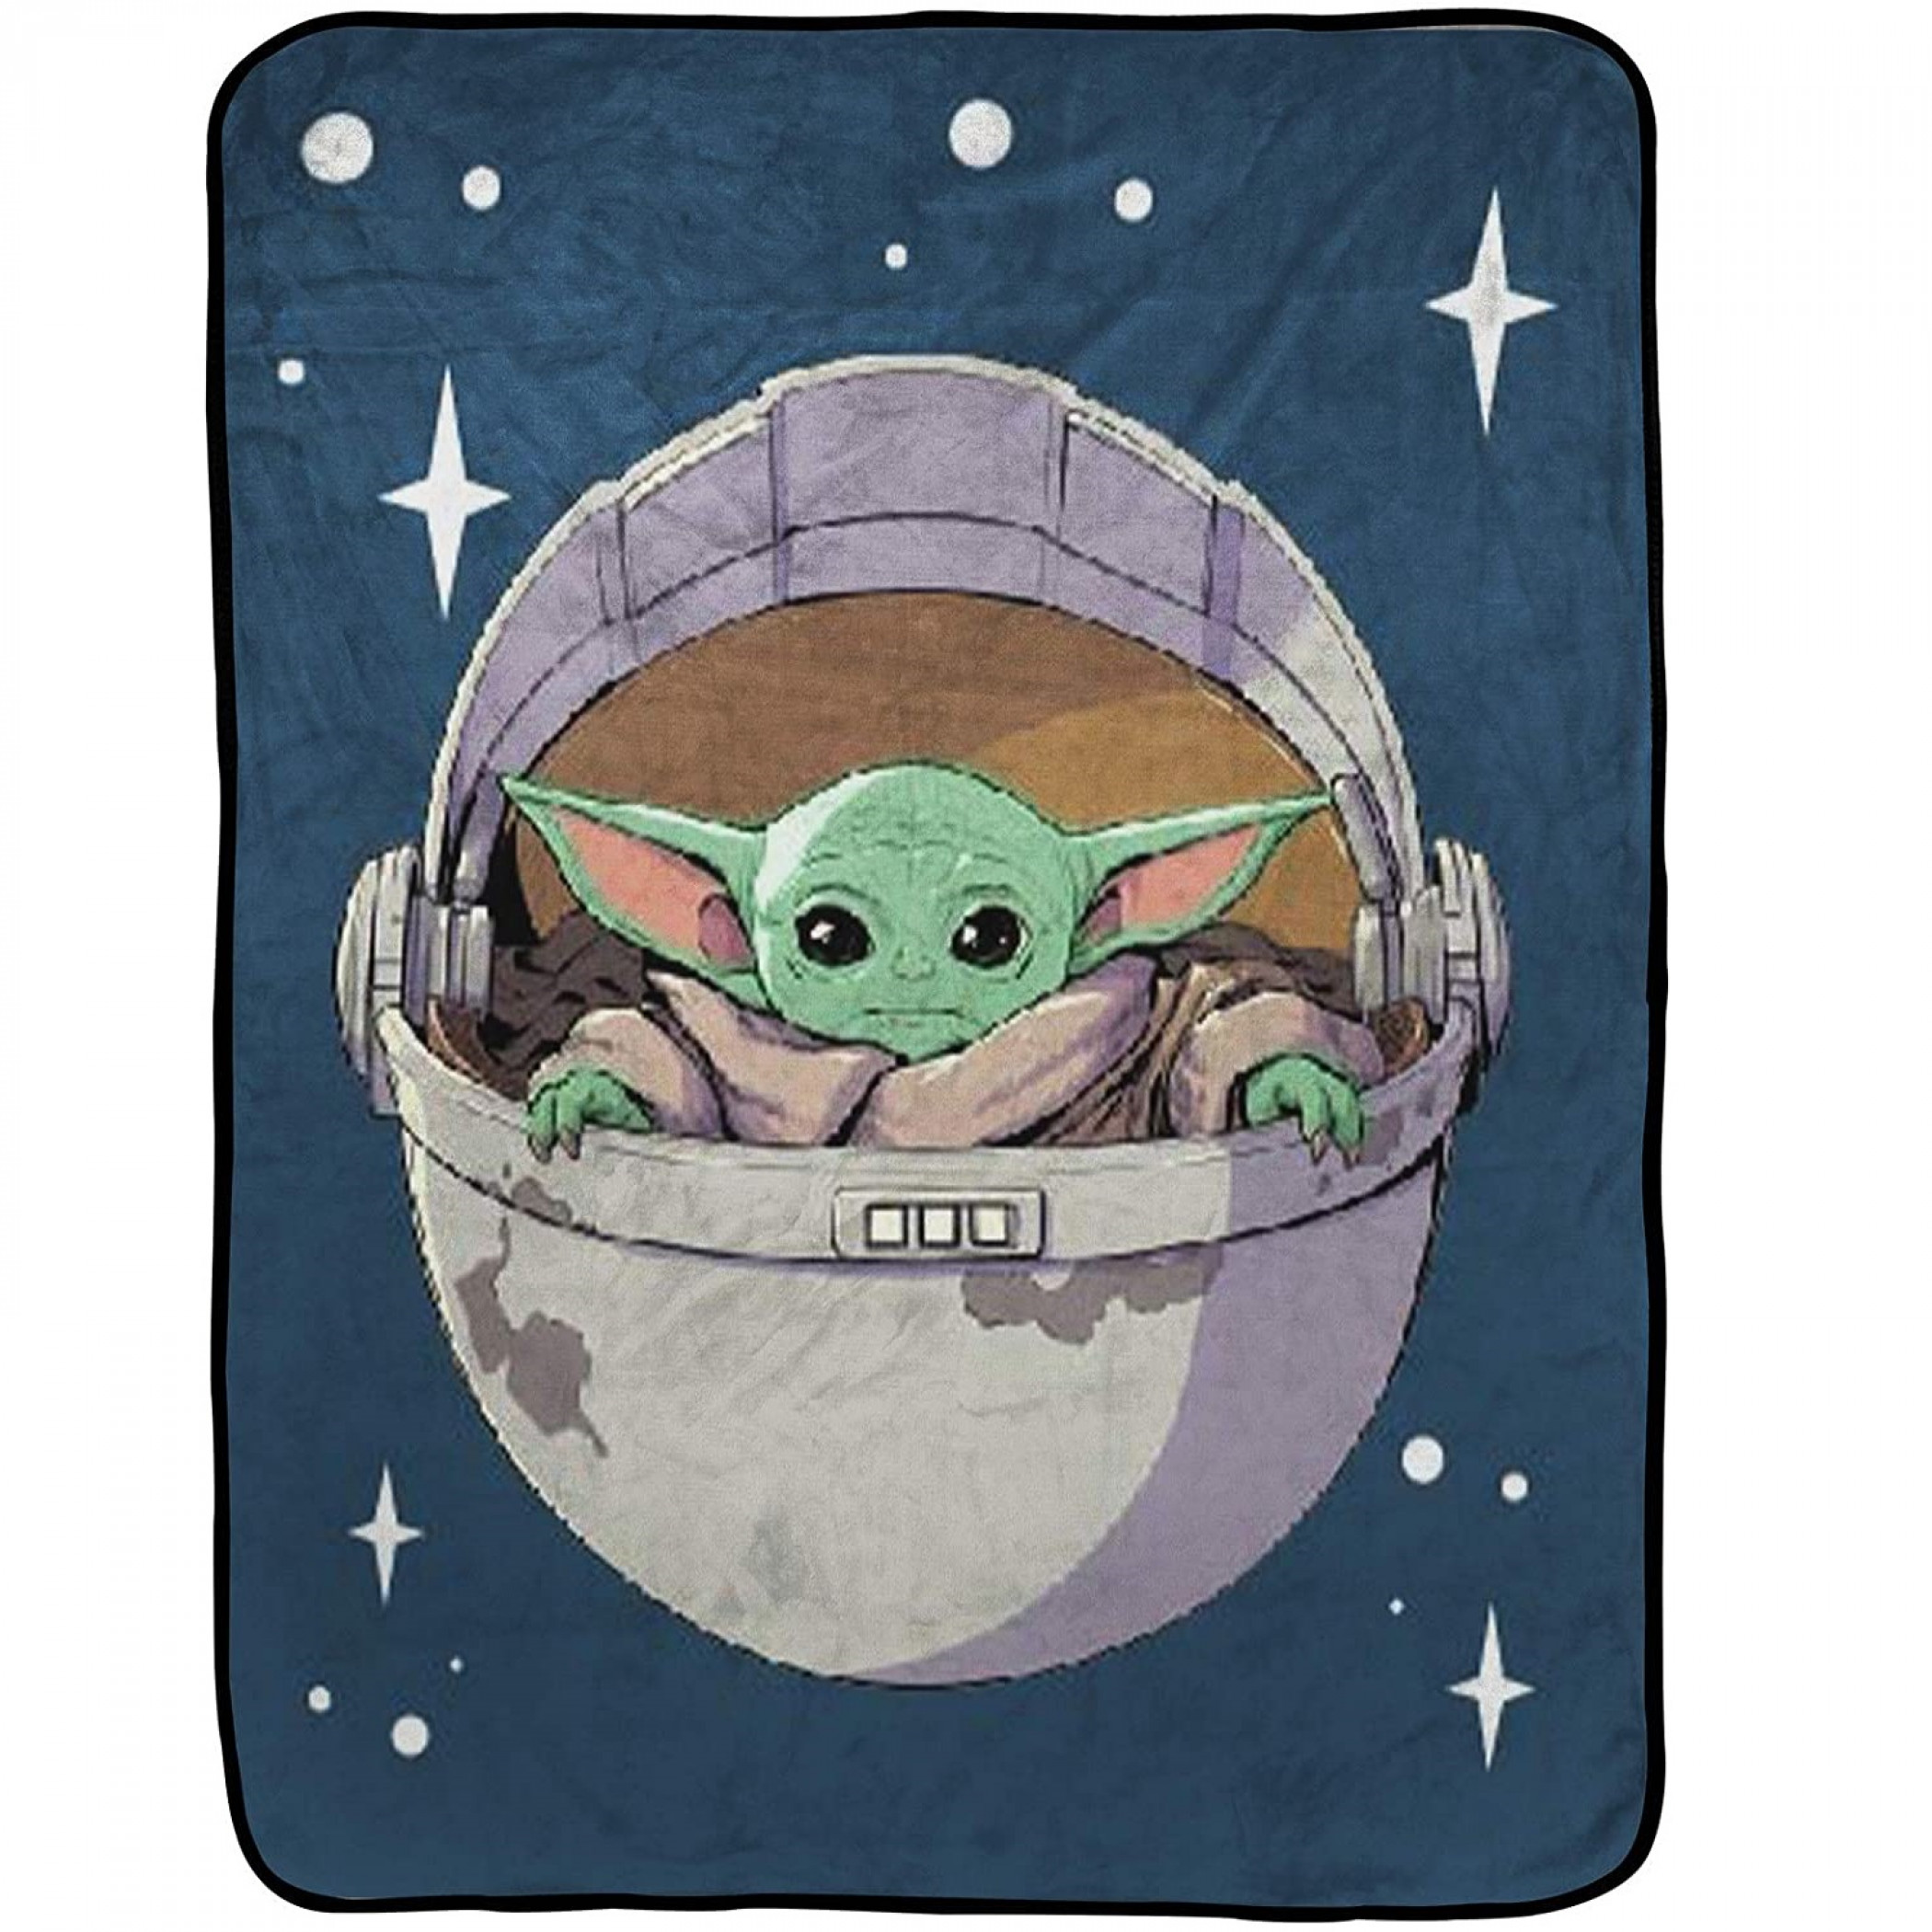 Star Wars The Mandalorian The Child Carriage Blanket